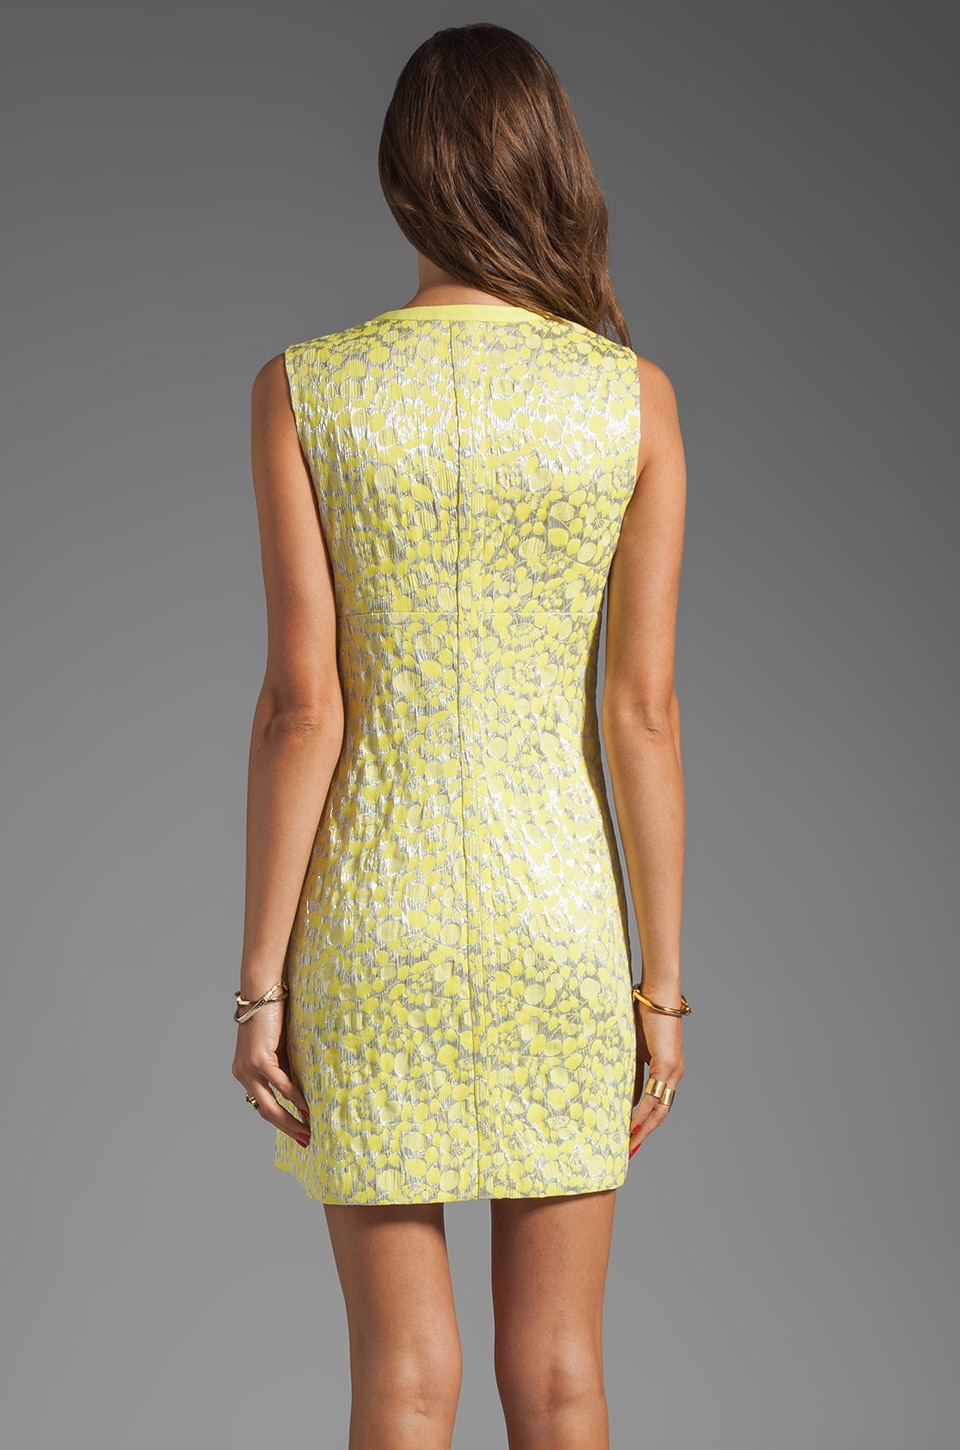 Diane von Furstenberg Sandine Balloon Metallic Jacquard Dress in Dandelion/Silver